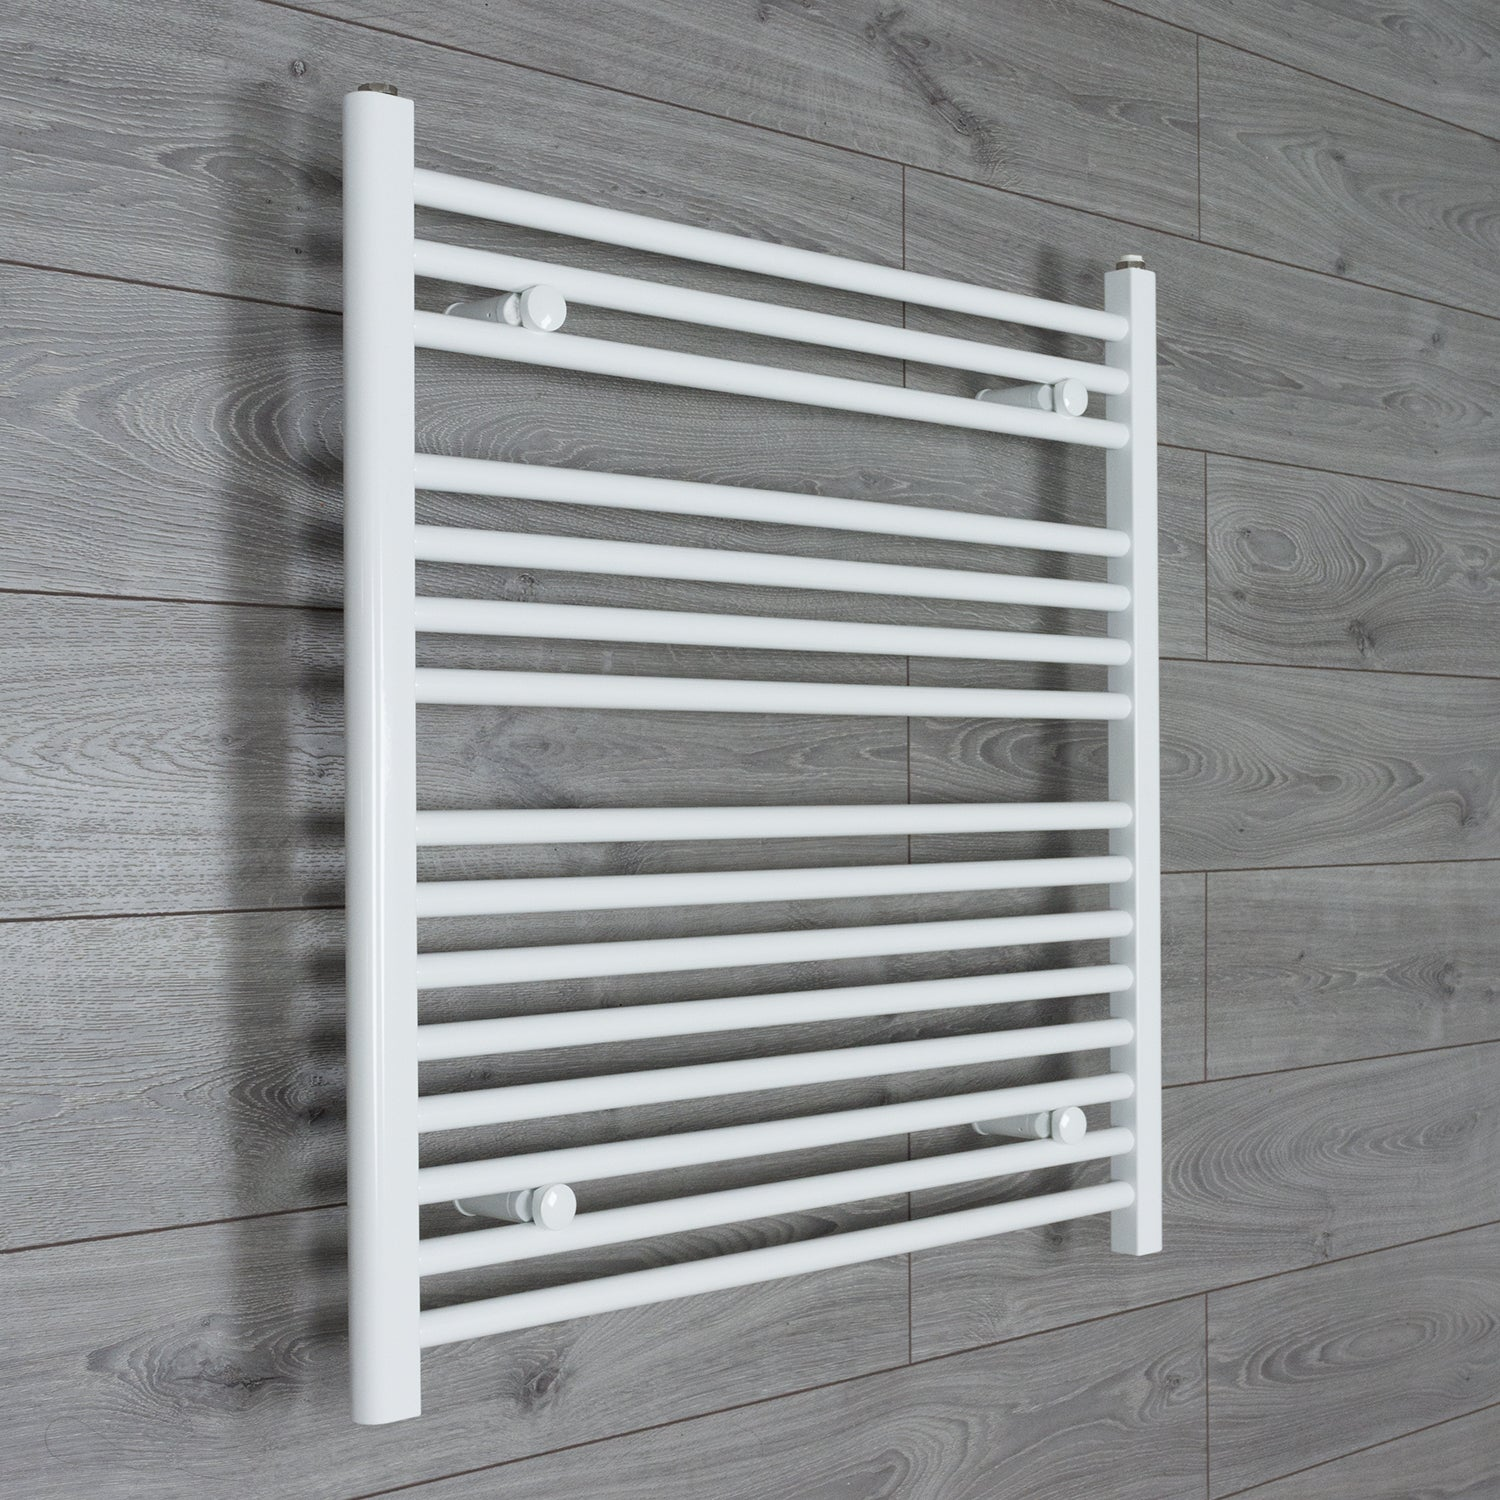 900mm Wide 800mm High White Towel Rail Radiator